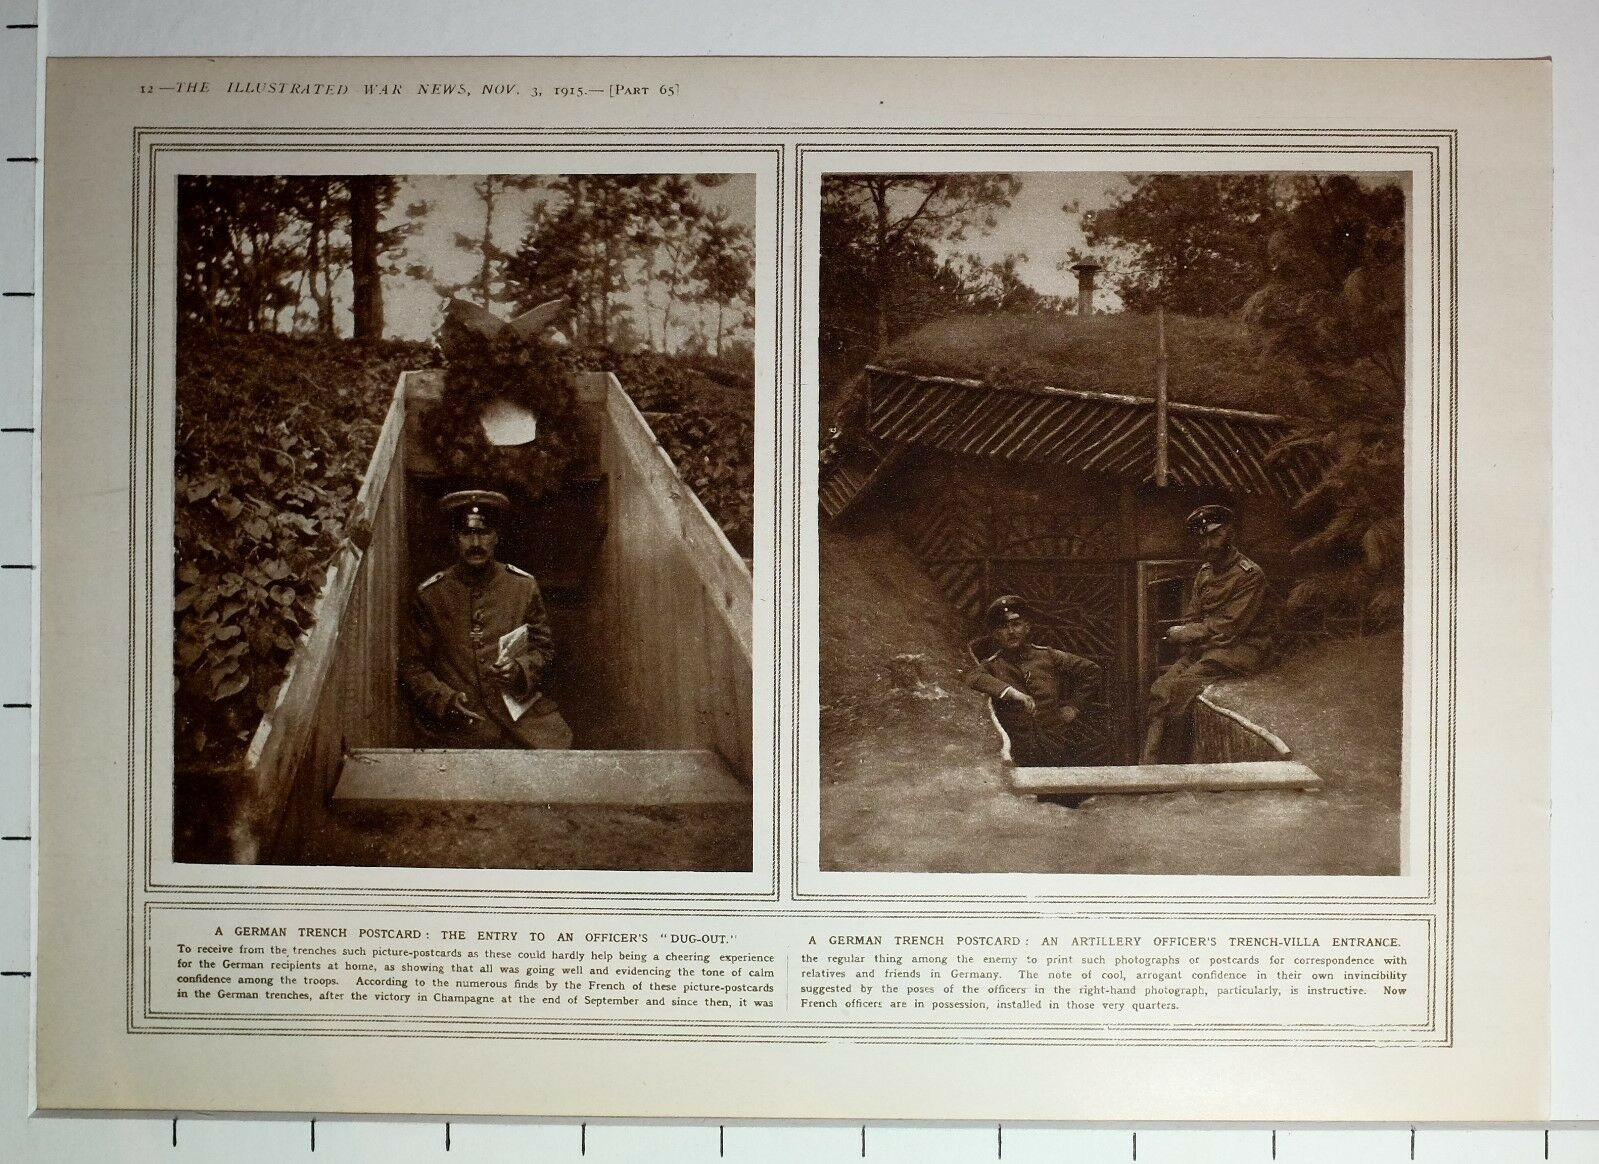 1915 Wwi Ww1 Print German Trench Postcard Entry To Officers Dug Out Diagram 1 Of 1only Available